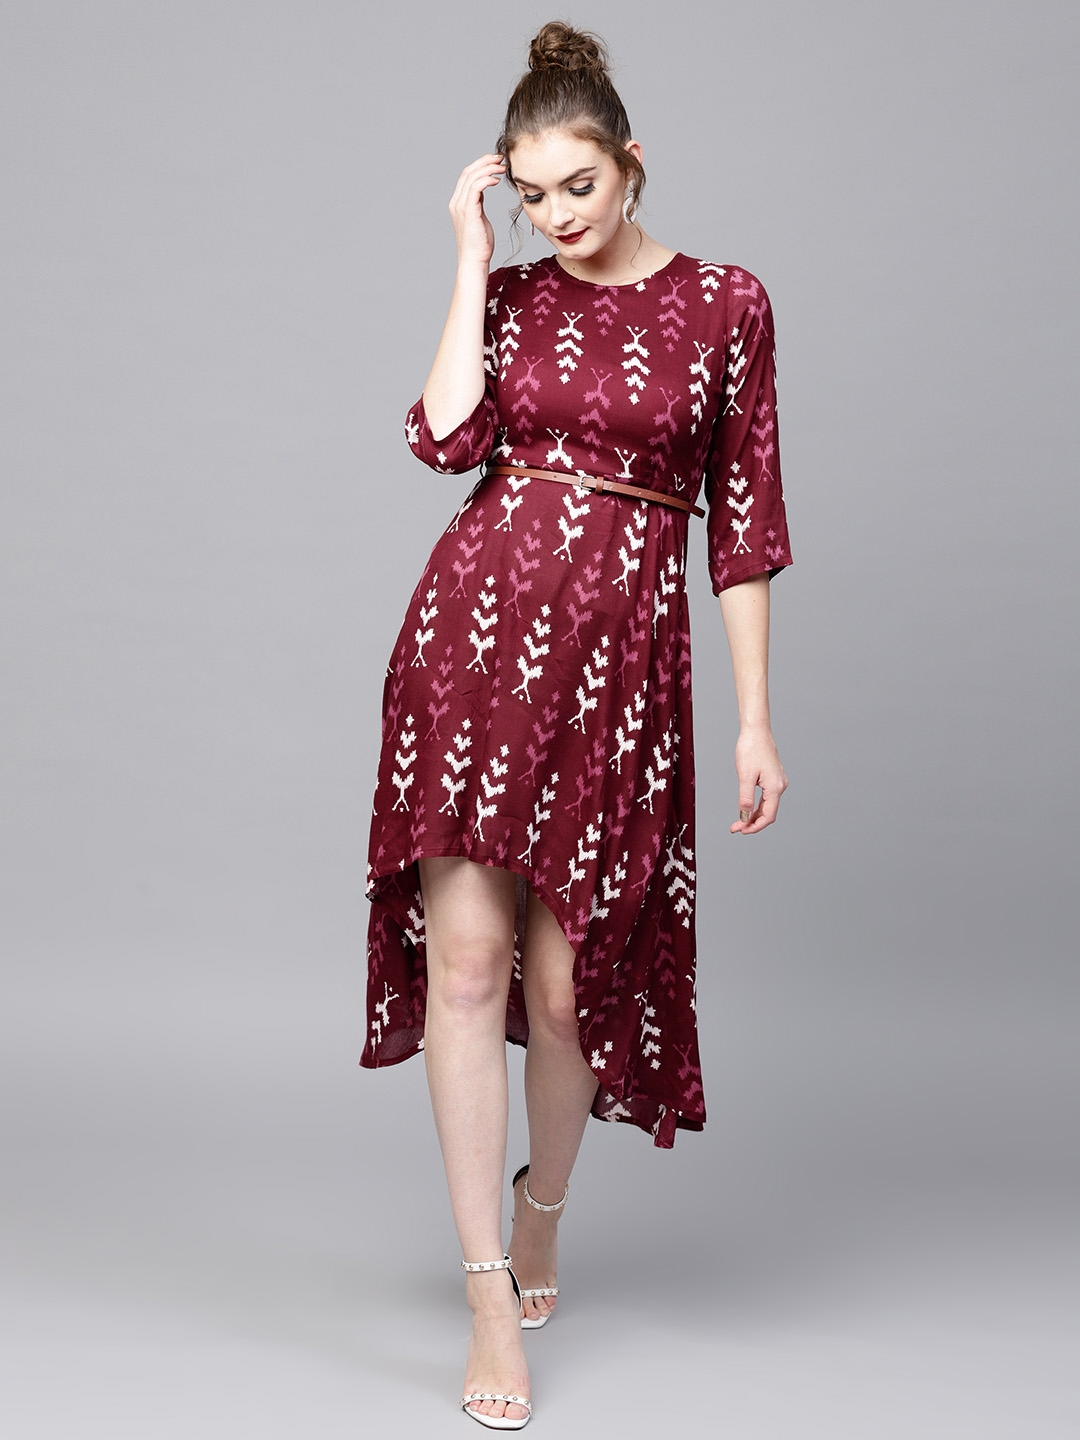 22acd7bb15 Buy SASSAFRAS Women Maroon Ikat Print High Low A Line Dress ...